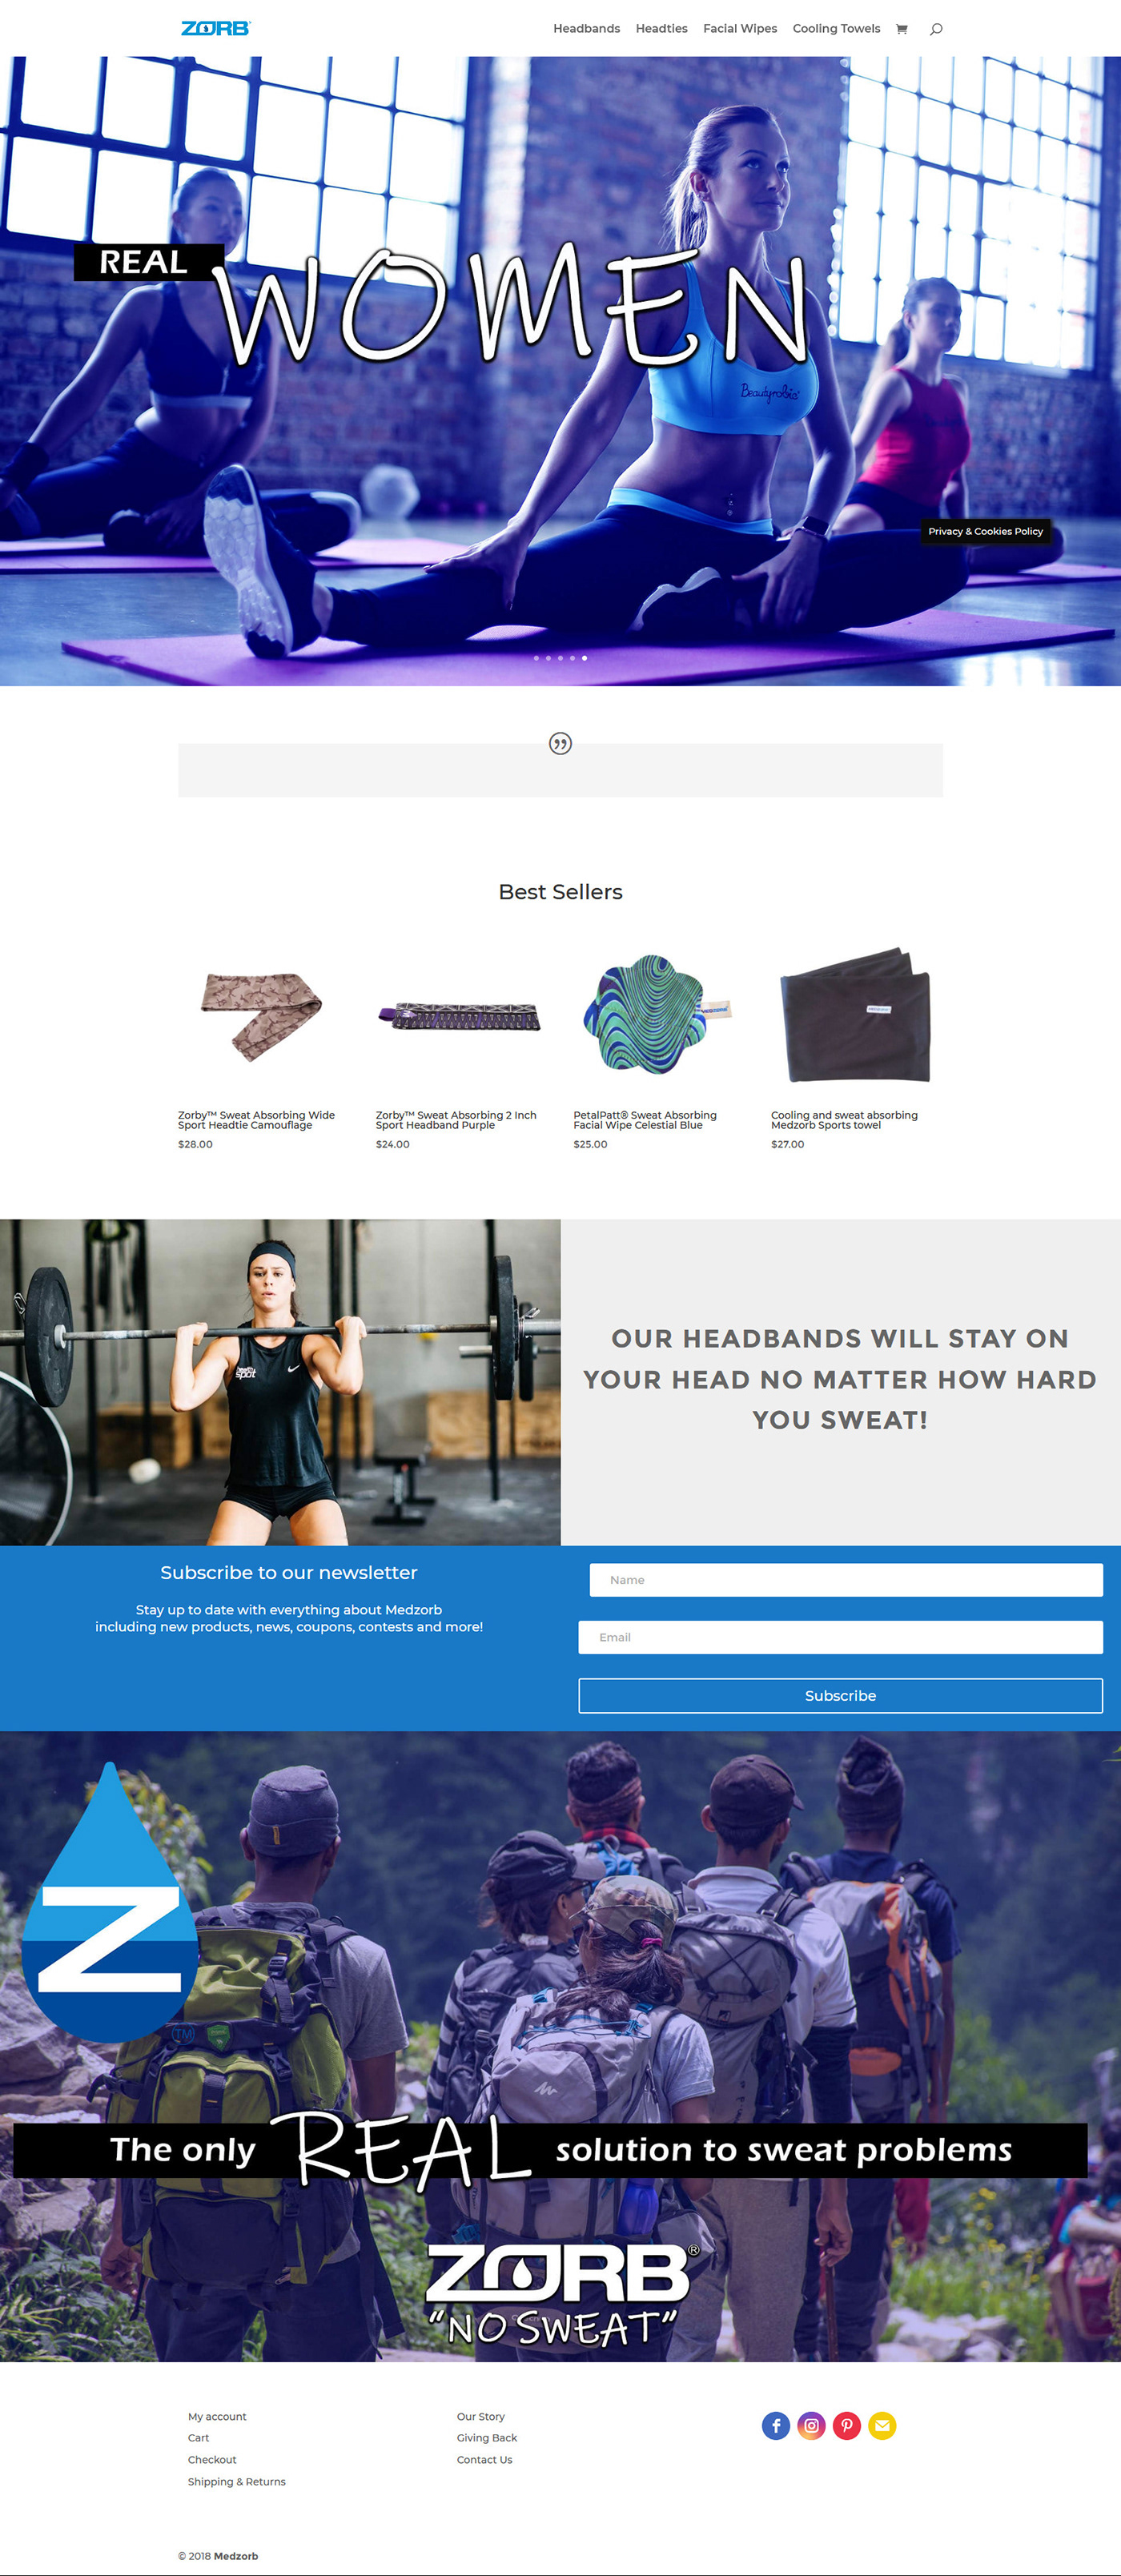 e-Commerce website facial wipes template landing page wordpress template Yoga Template Fitness Template Towel Template Web Design  template design